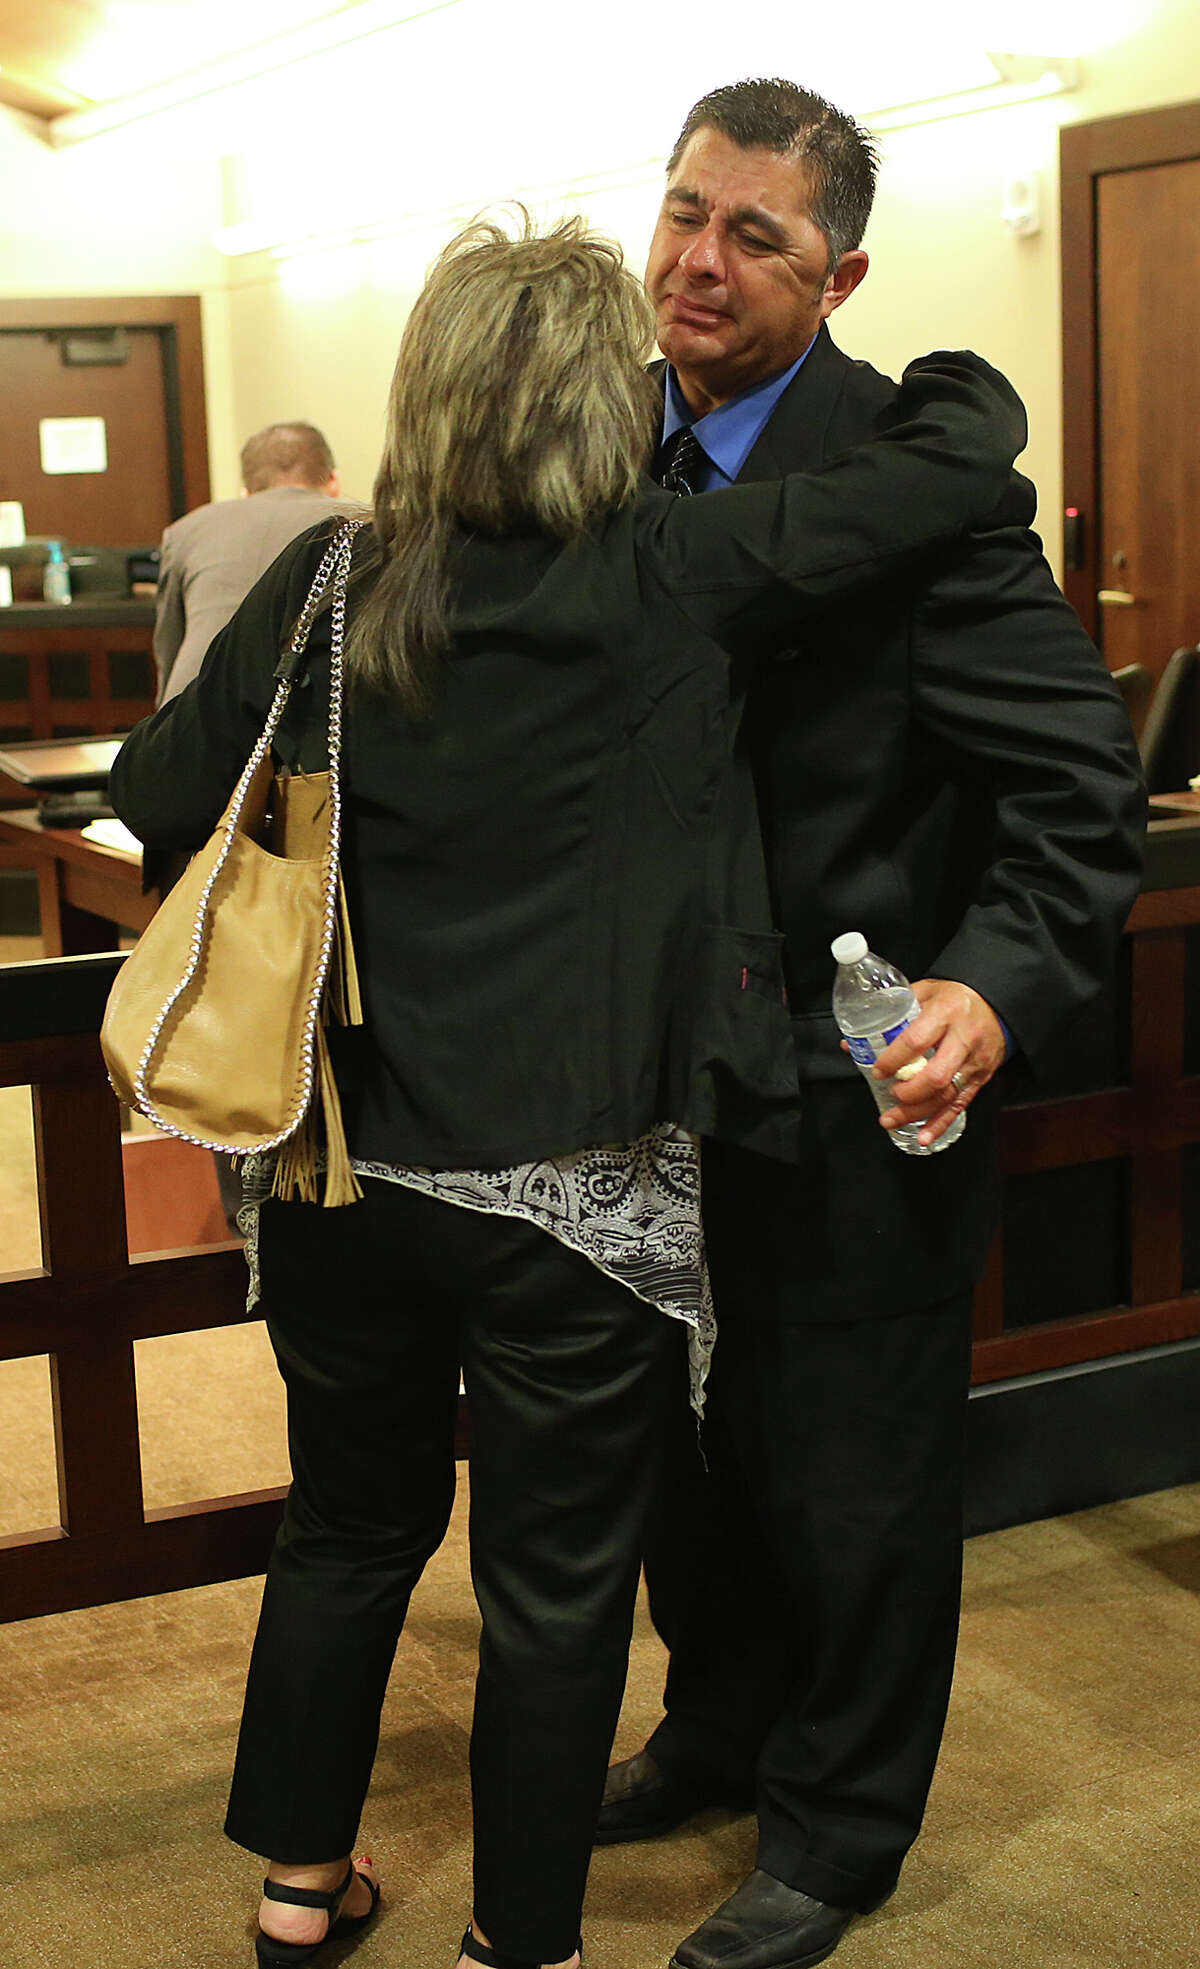 Victim Jacques Gonzales is hugged by his sister, Cynthia Garibay Molina after testifying at the attempted murder trial of Adolph Ramos Suarez in the 379th State District Court at the Cadena-Reeves Justice Center, Tuesday, August 4, 2015. Suarez is accused of shooting Gonzales three times in a road rage incident at the 800 block of Utopia Lane in May 2012. Witnesses told police Suarez first shot him in the head and then walked over to Gonzales as he lay in the street and shot him two more times.